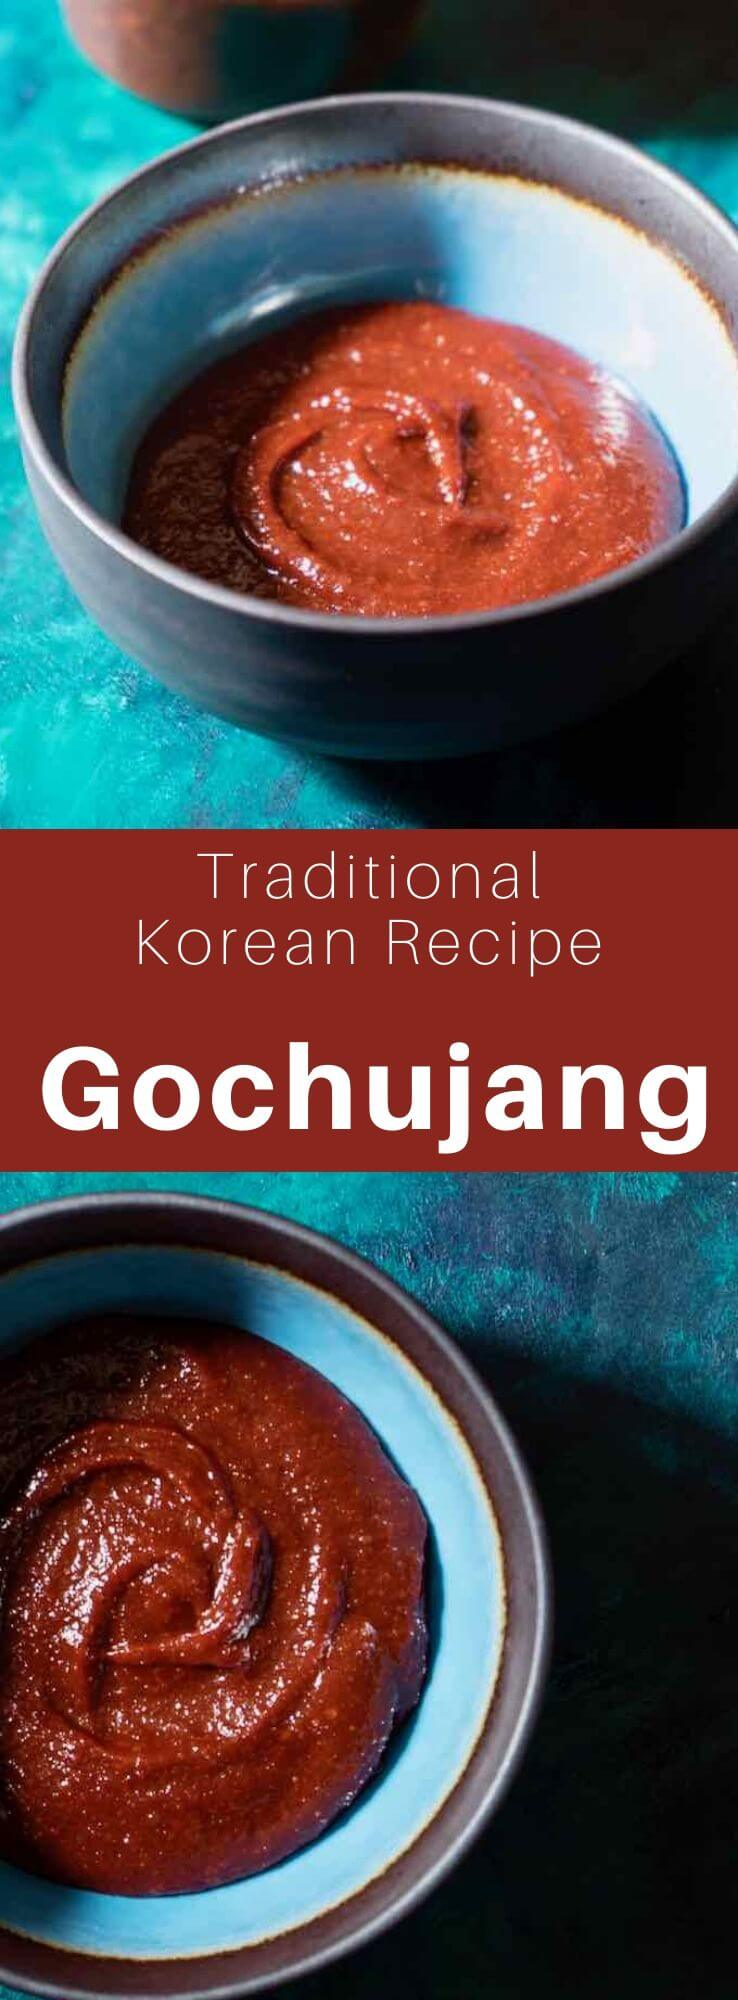 Gochujang (고추장) is a spicy Korean fermented condiment made from red peppers, meju (fermented soybean paste), sticky rice flour and wheat germ. #KoreanFood #KoreanRecipe #KoreanCuisine #WorldCuisine #196flavors